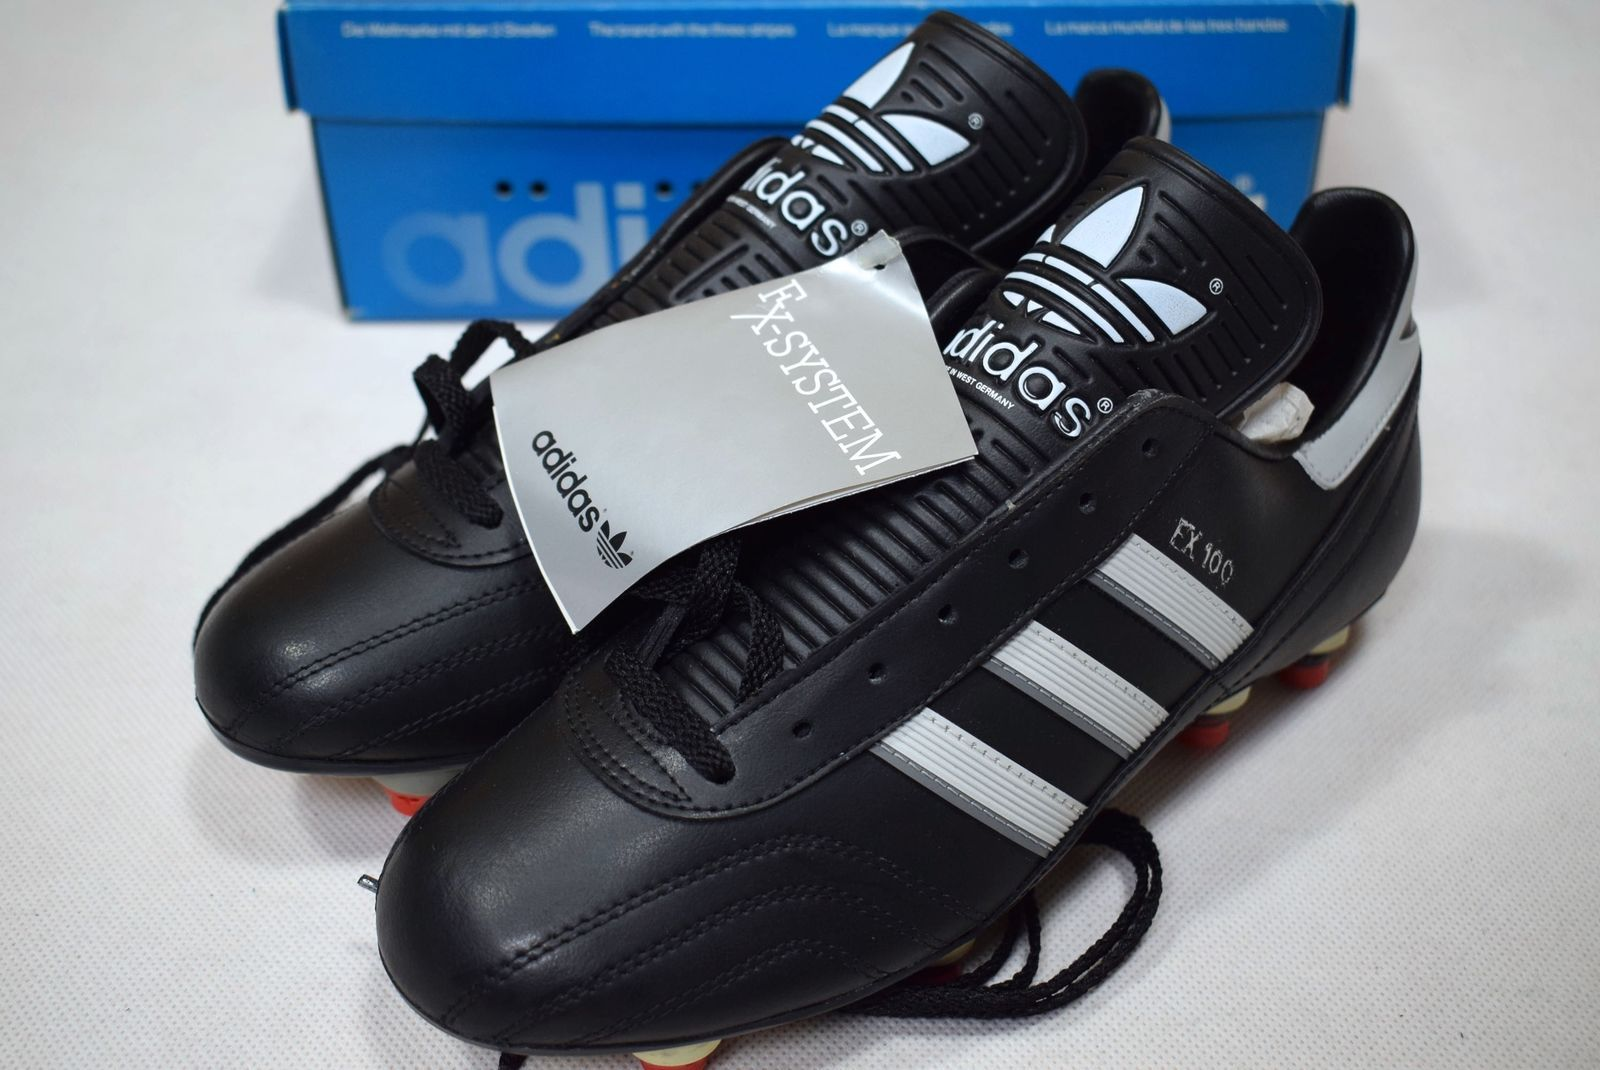 size 40 0174f 10f09 Adidas FX 100 Soccer Shoes Soccer Shoes Cleats Vintage Deadstock 6.5 NEW    eBay